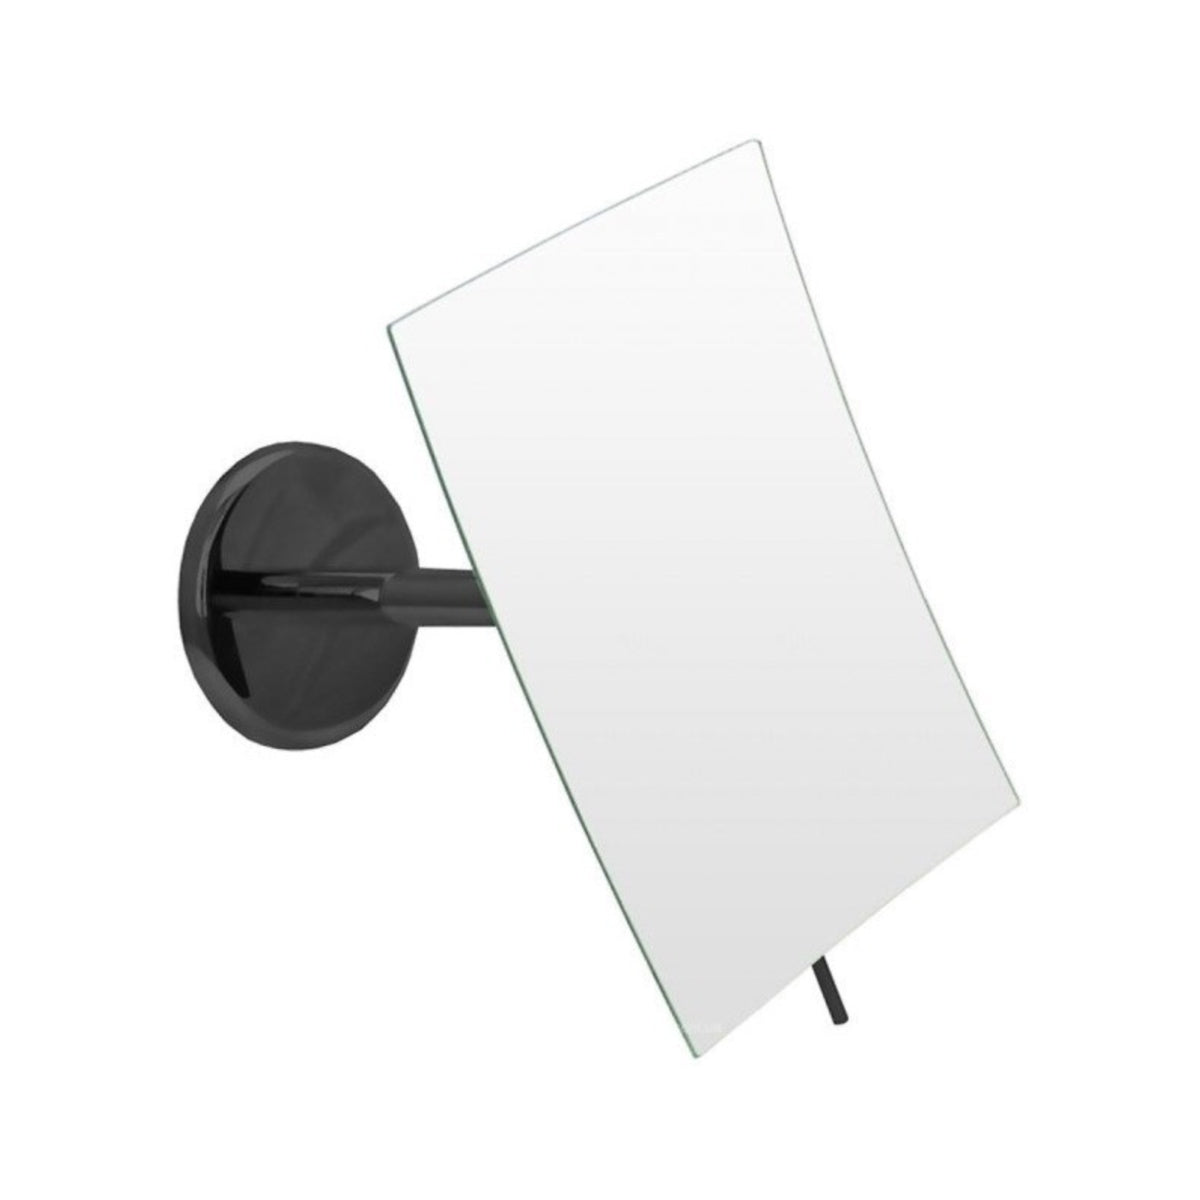 Emco Black Wall Mirror, 3x, Rectangular